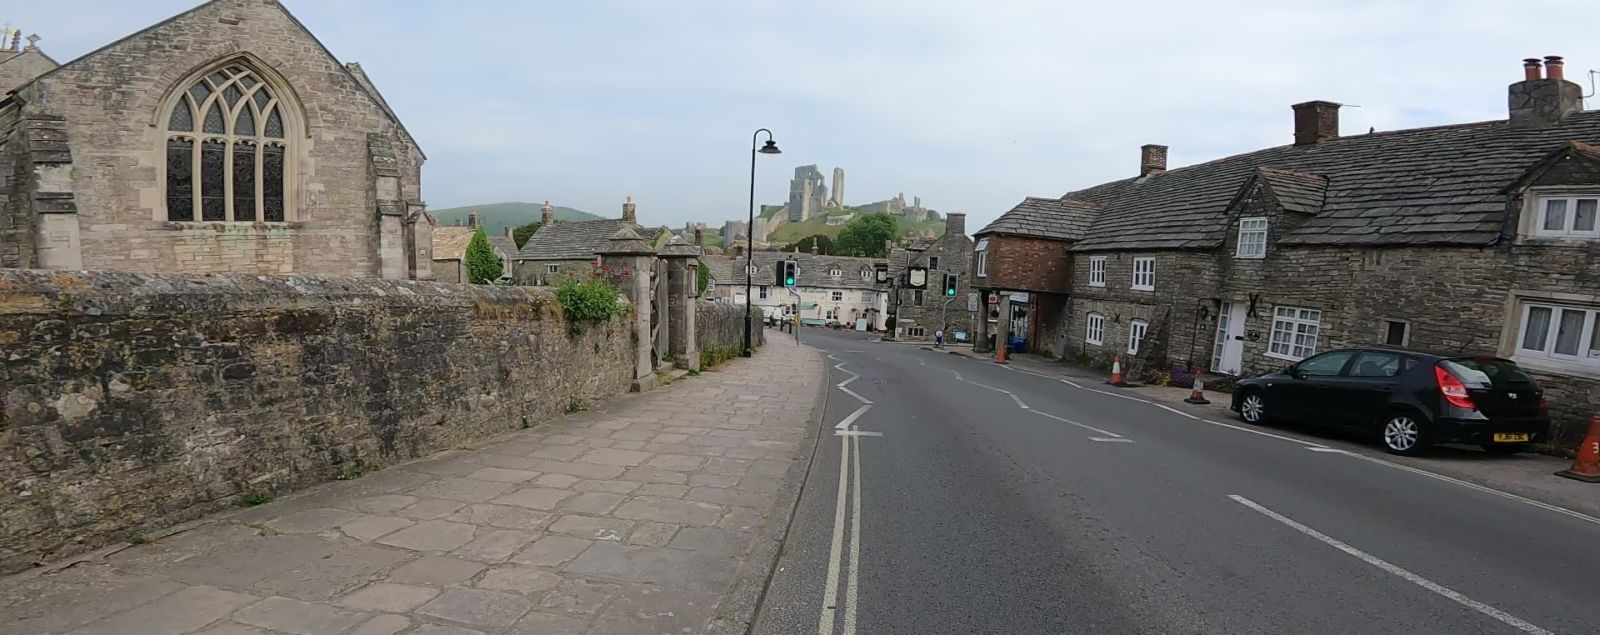 Old houses and castle